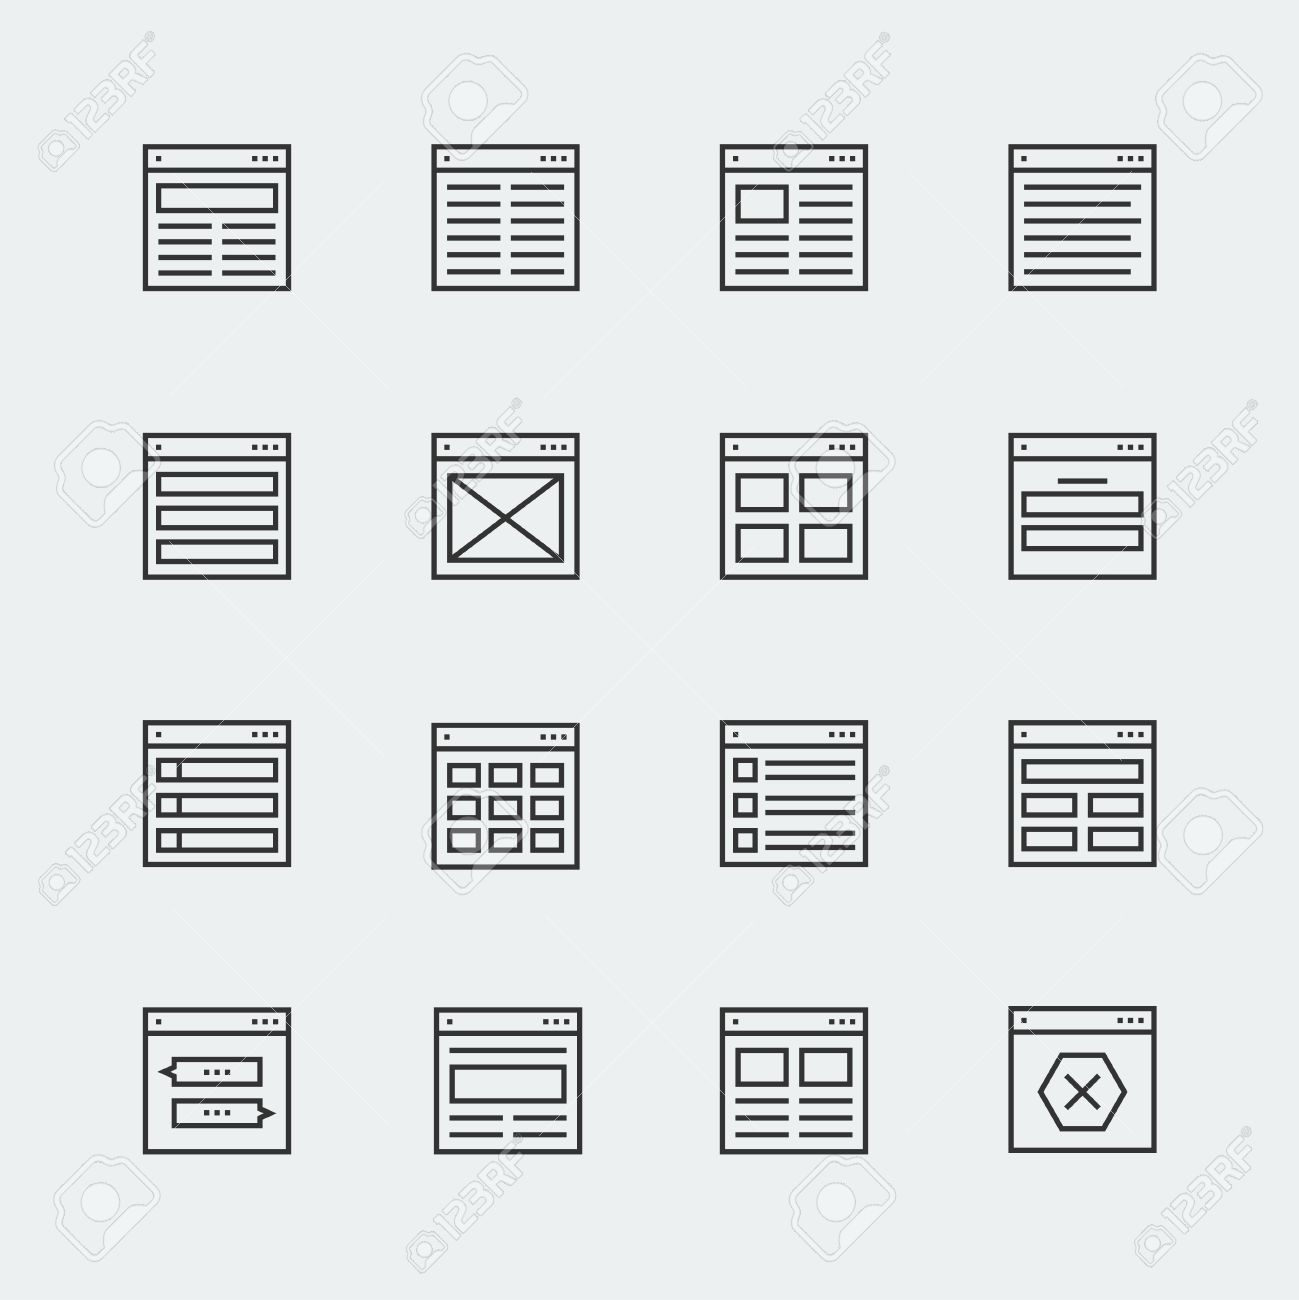 Website Or Application Wireframe Template And Design Layout Icons ...